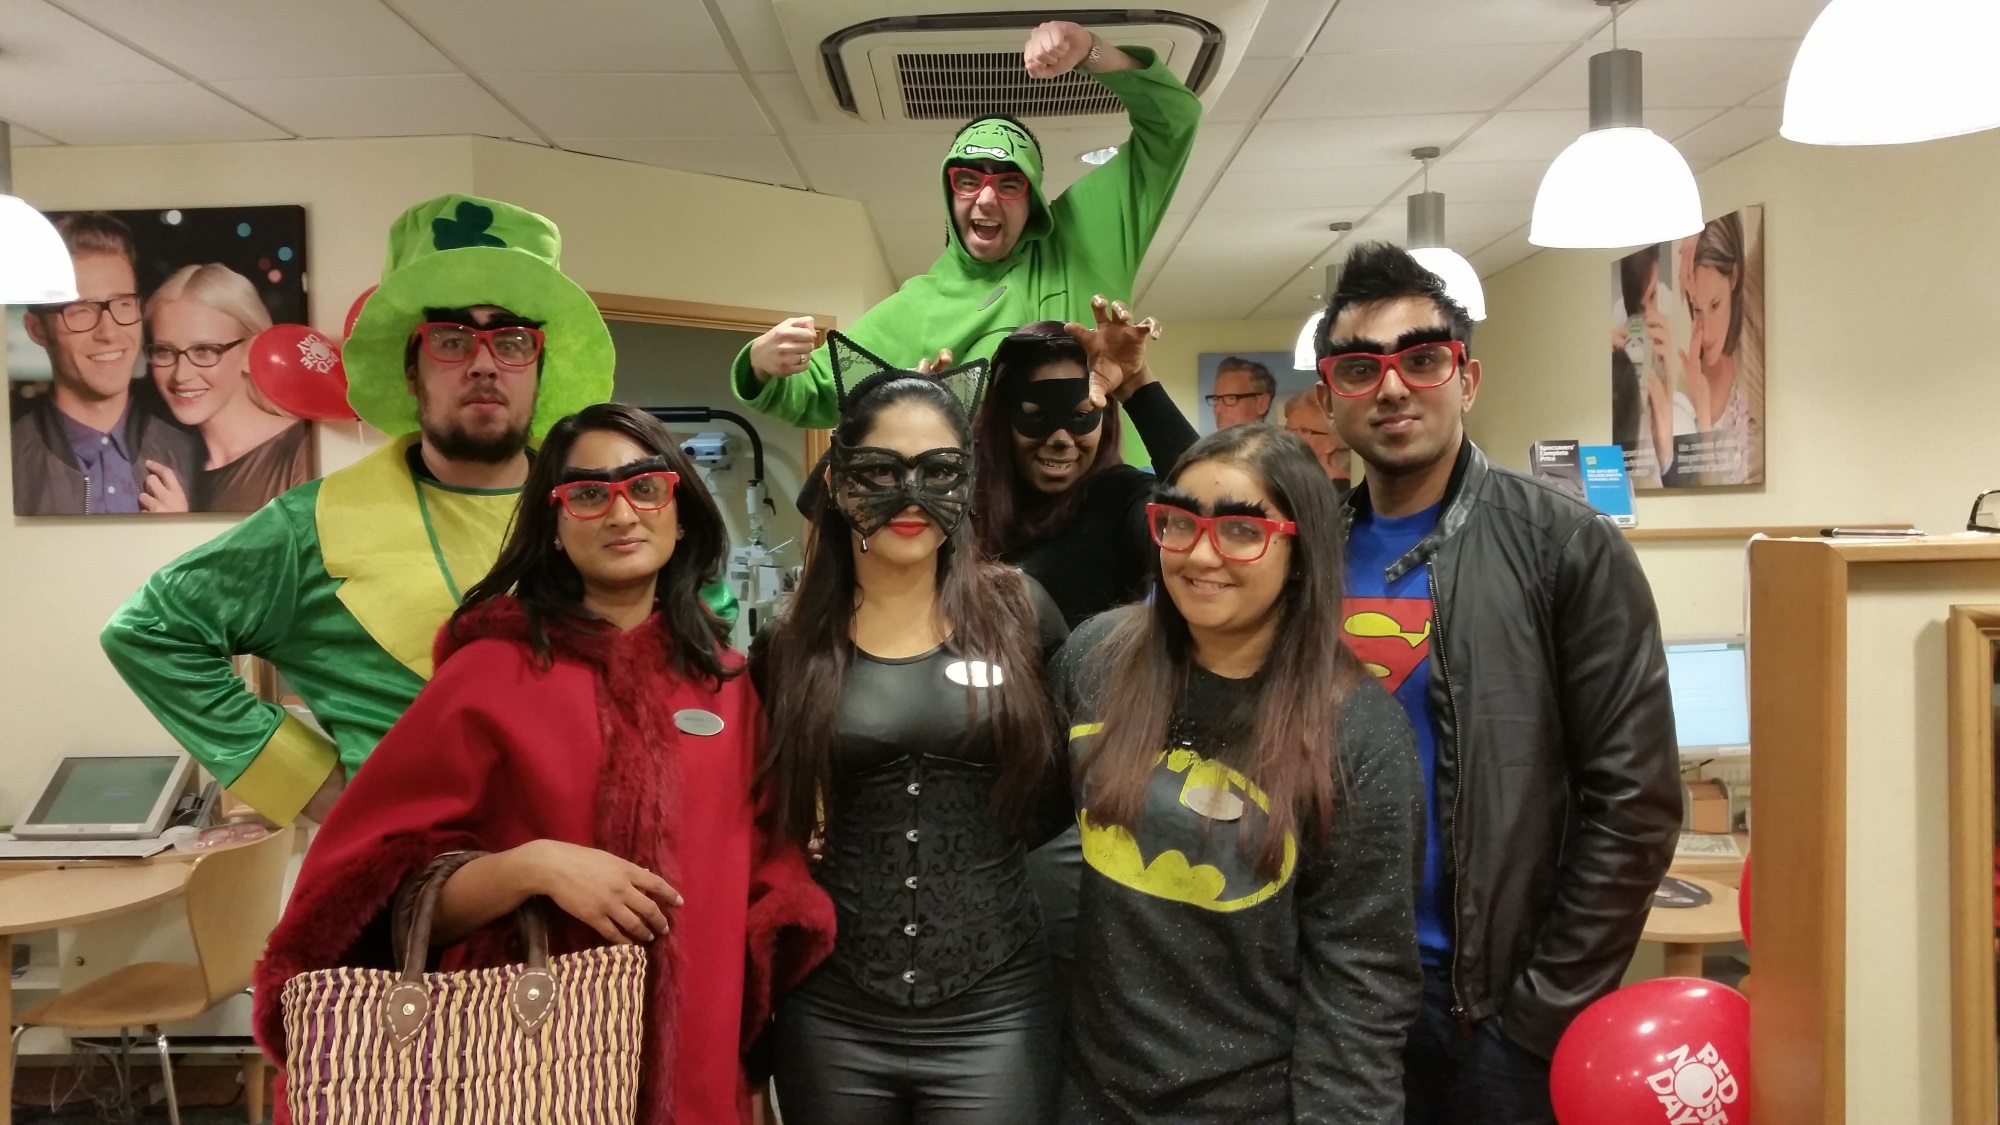 Opticians at the Specsavers North Finchley store dressed up as superheroes for Comic Relief